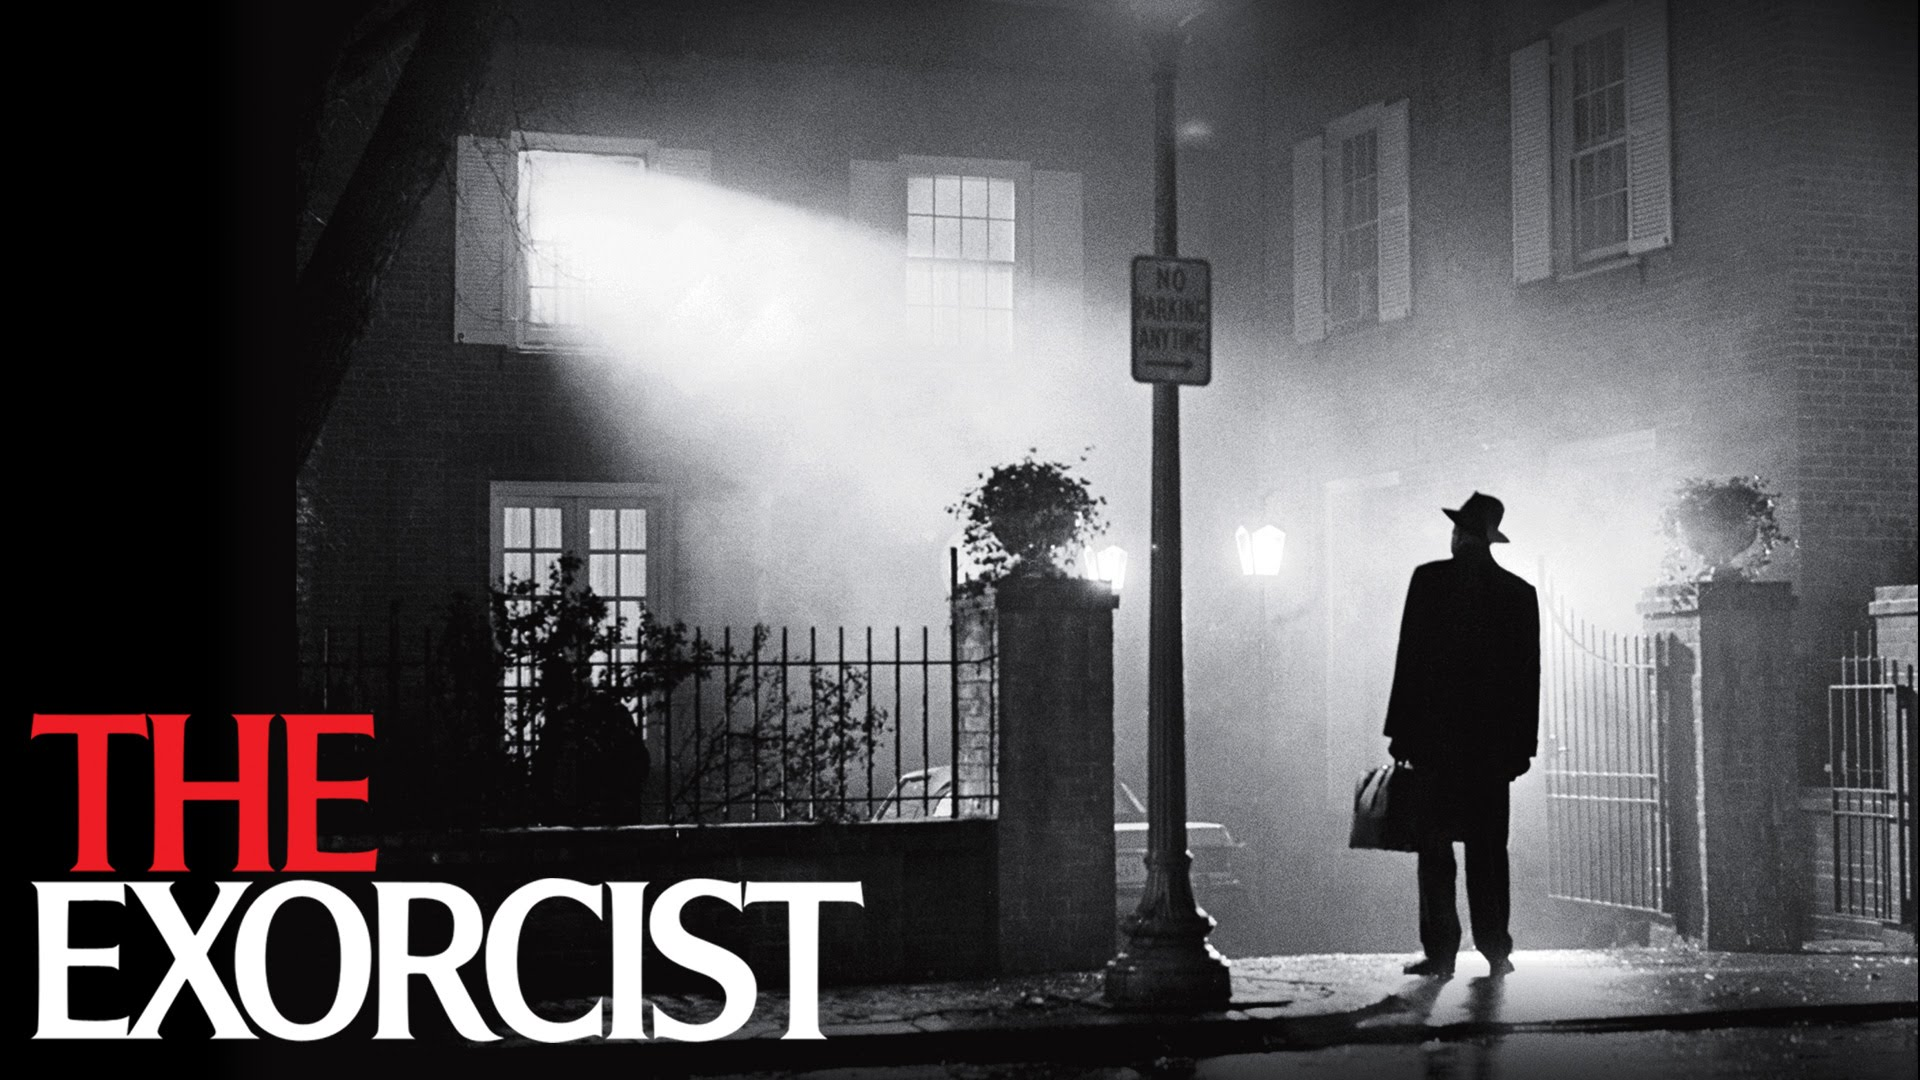 The Exorcist Wallpapers - WallpaperPulse